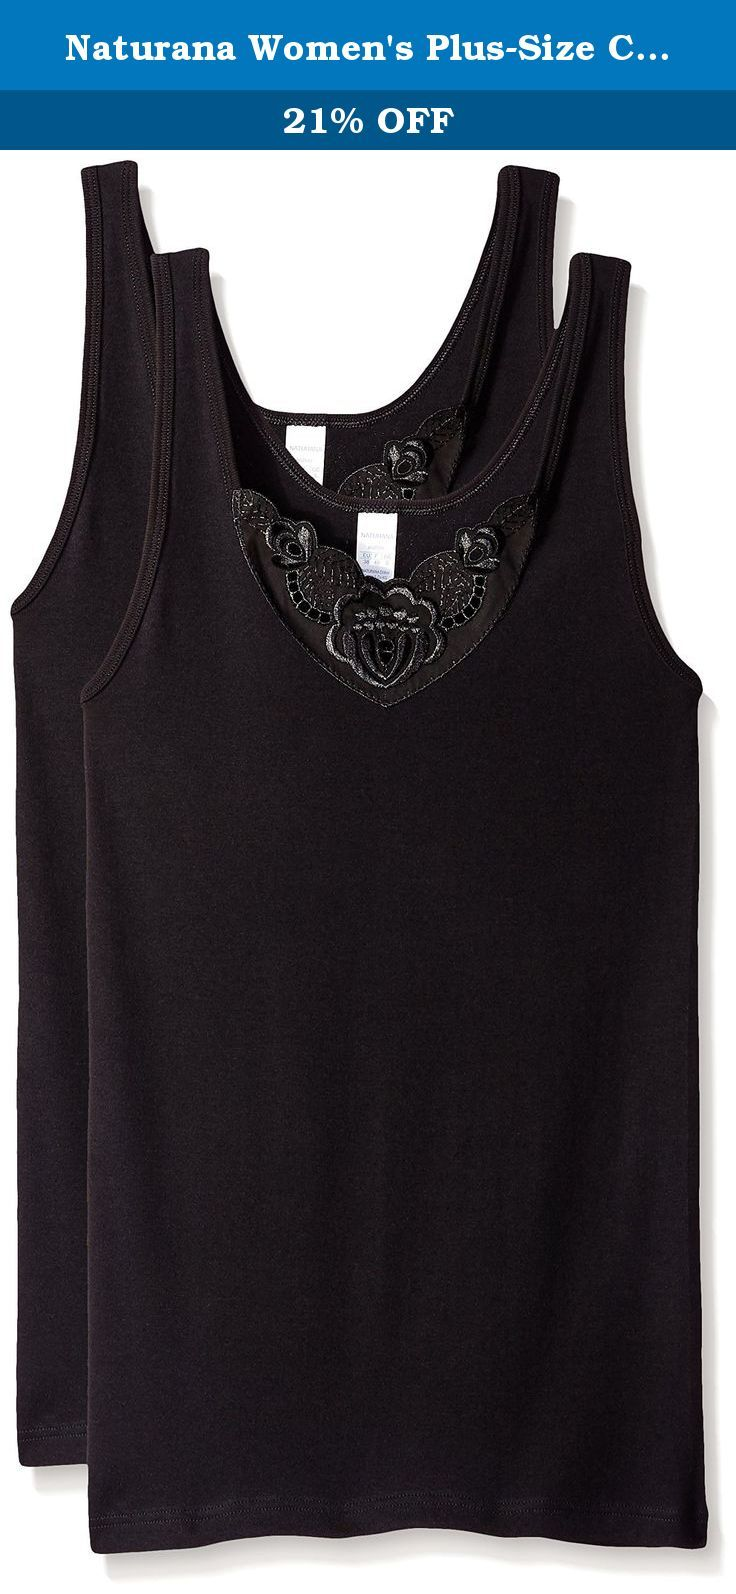 Naturana Women's Plus-Size Cotton Camisole, Black, XX-Large. Complimenting your everyday moves, this cotton camisole is light in weight and fashionable with a butterfly applique at front neckline.